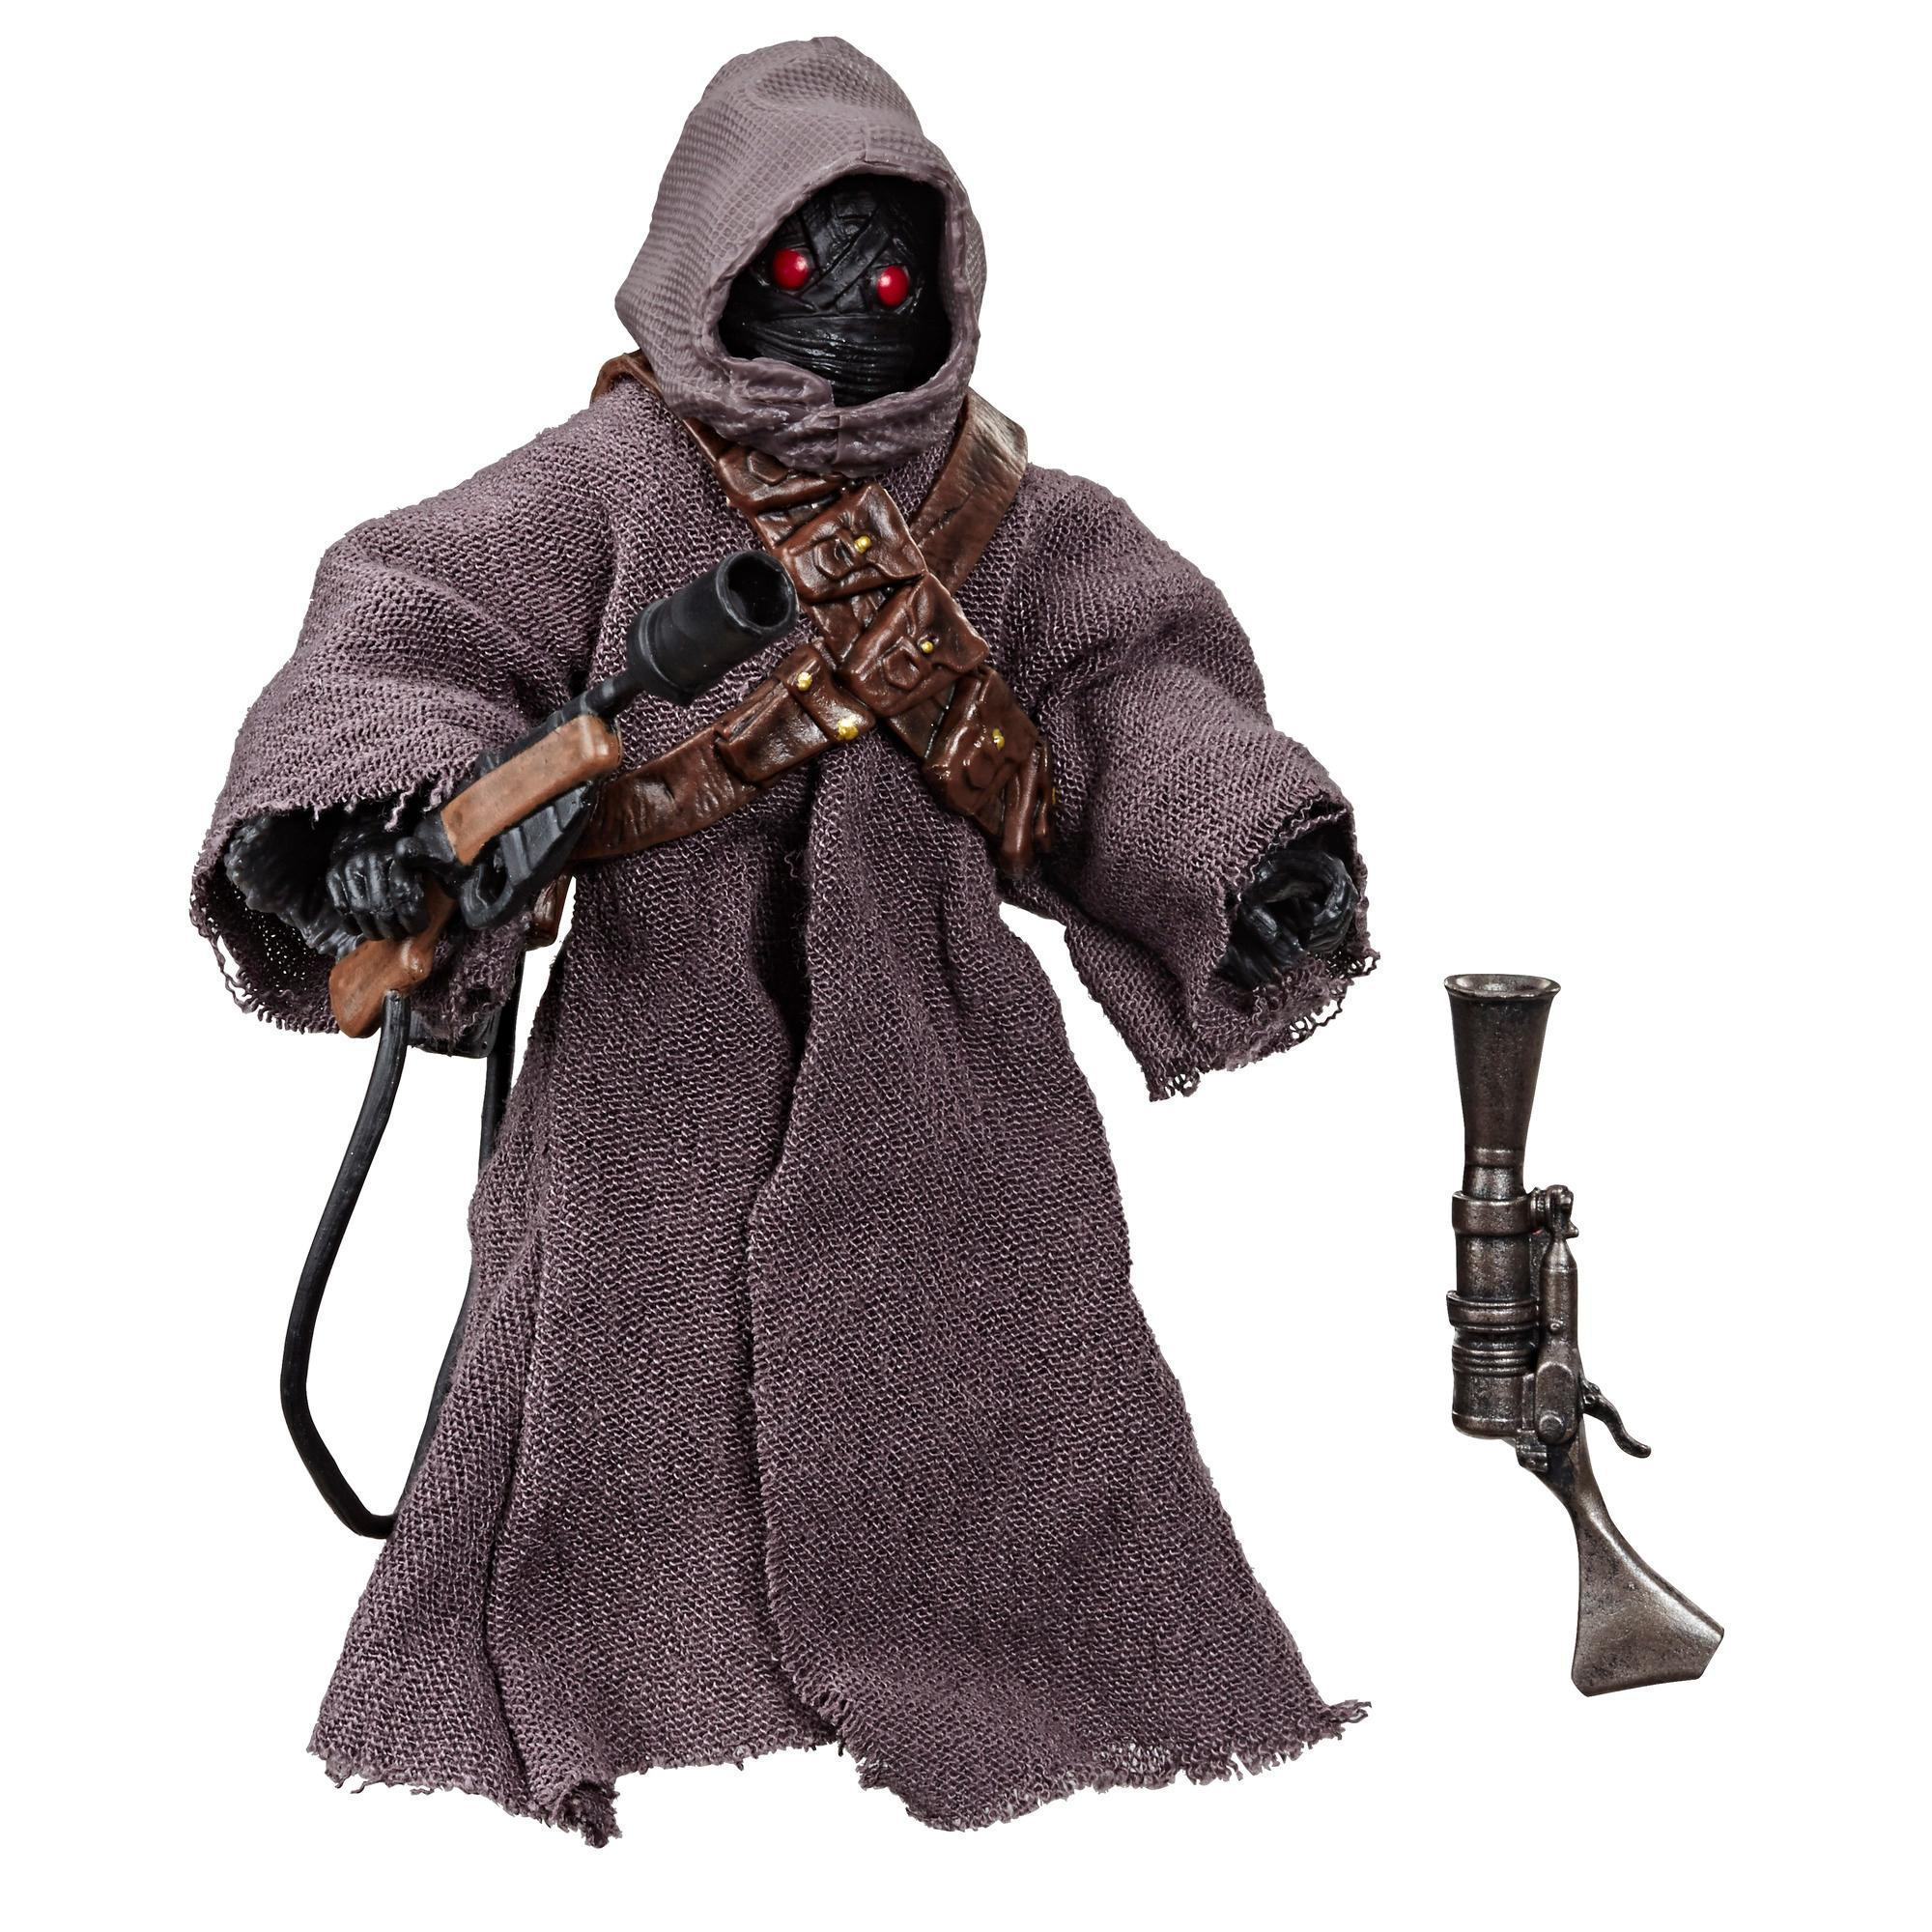 Star Wars The Black Series Offworld Jawa Toy 6-inch Scale The Mandalorian Collectible Action Figure, Kids Ages 4 and Up